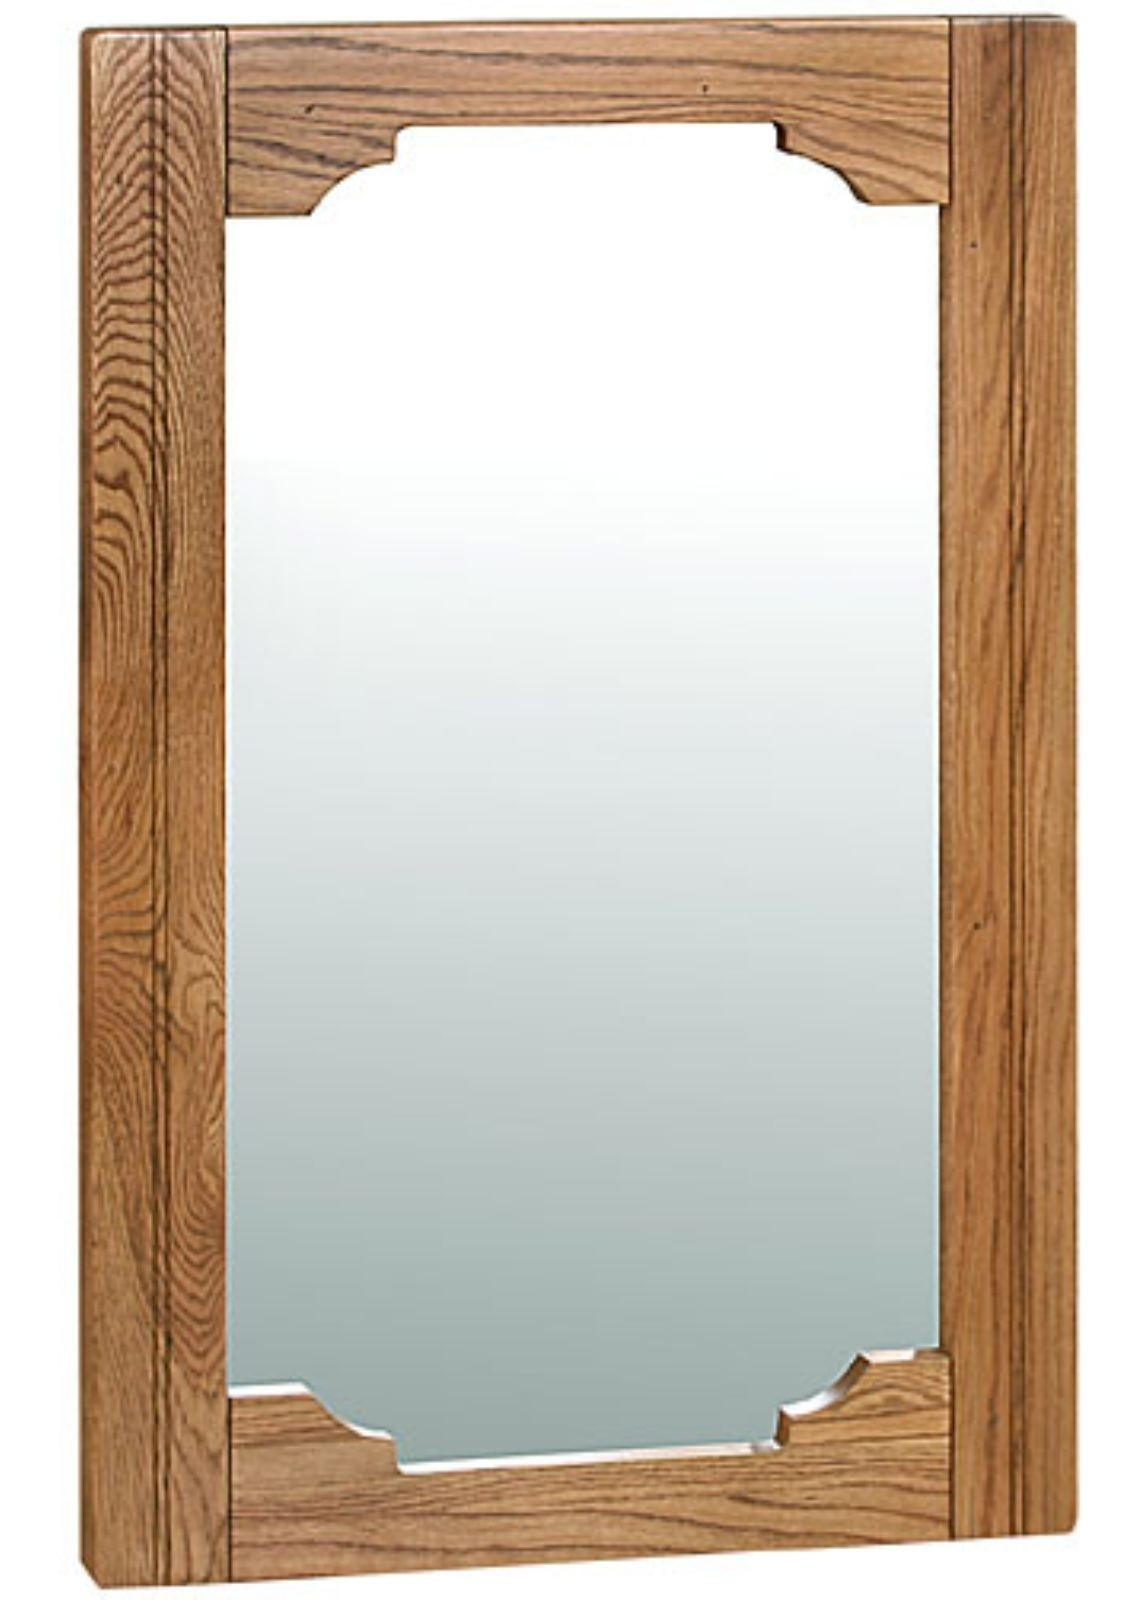 Toulouse Antique Oak Large Wall Mirror Oak Furniture Solutions Inside Oak Wall Mirrors (Image 11 of 15)